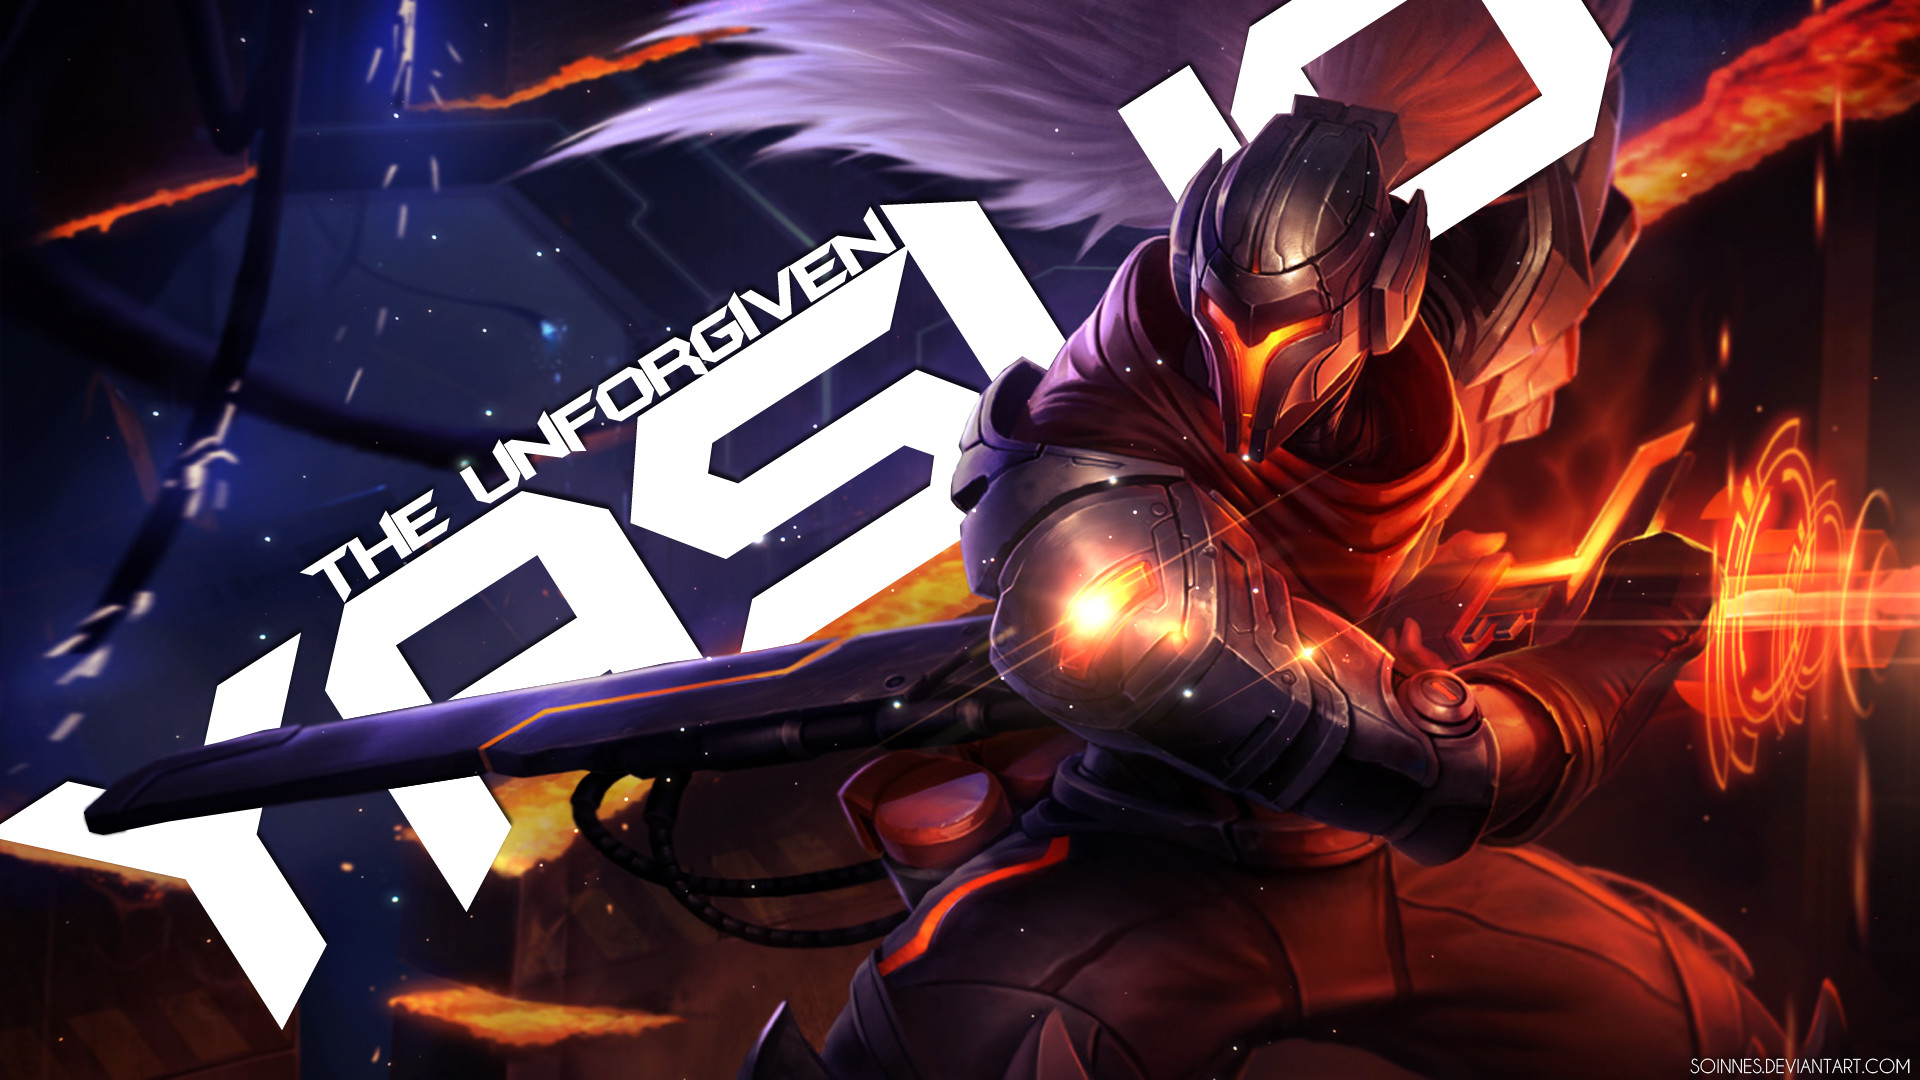 1920x1080 ... Yasuo the Unforgiven - League of Legends Wallpaper by Soinnes